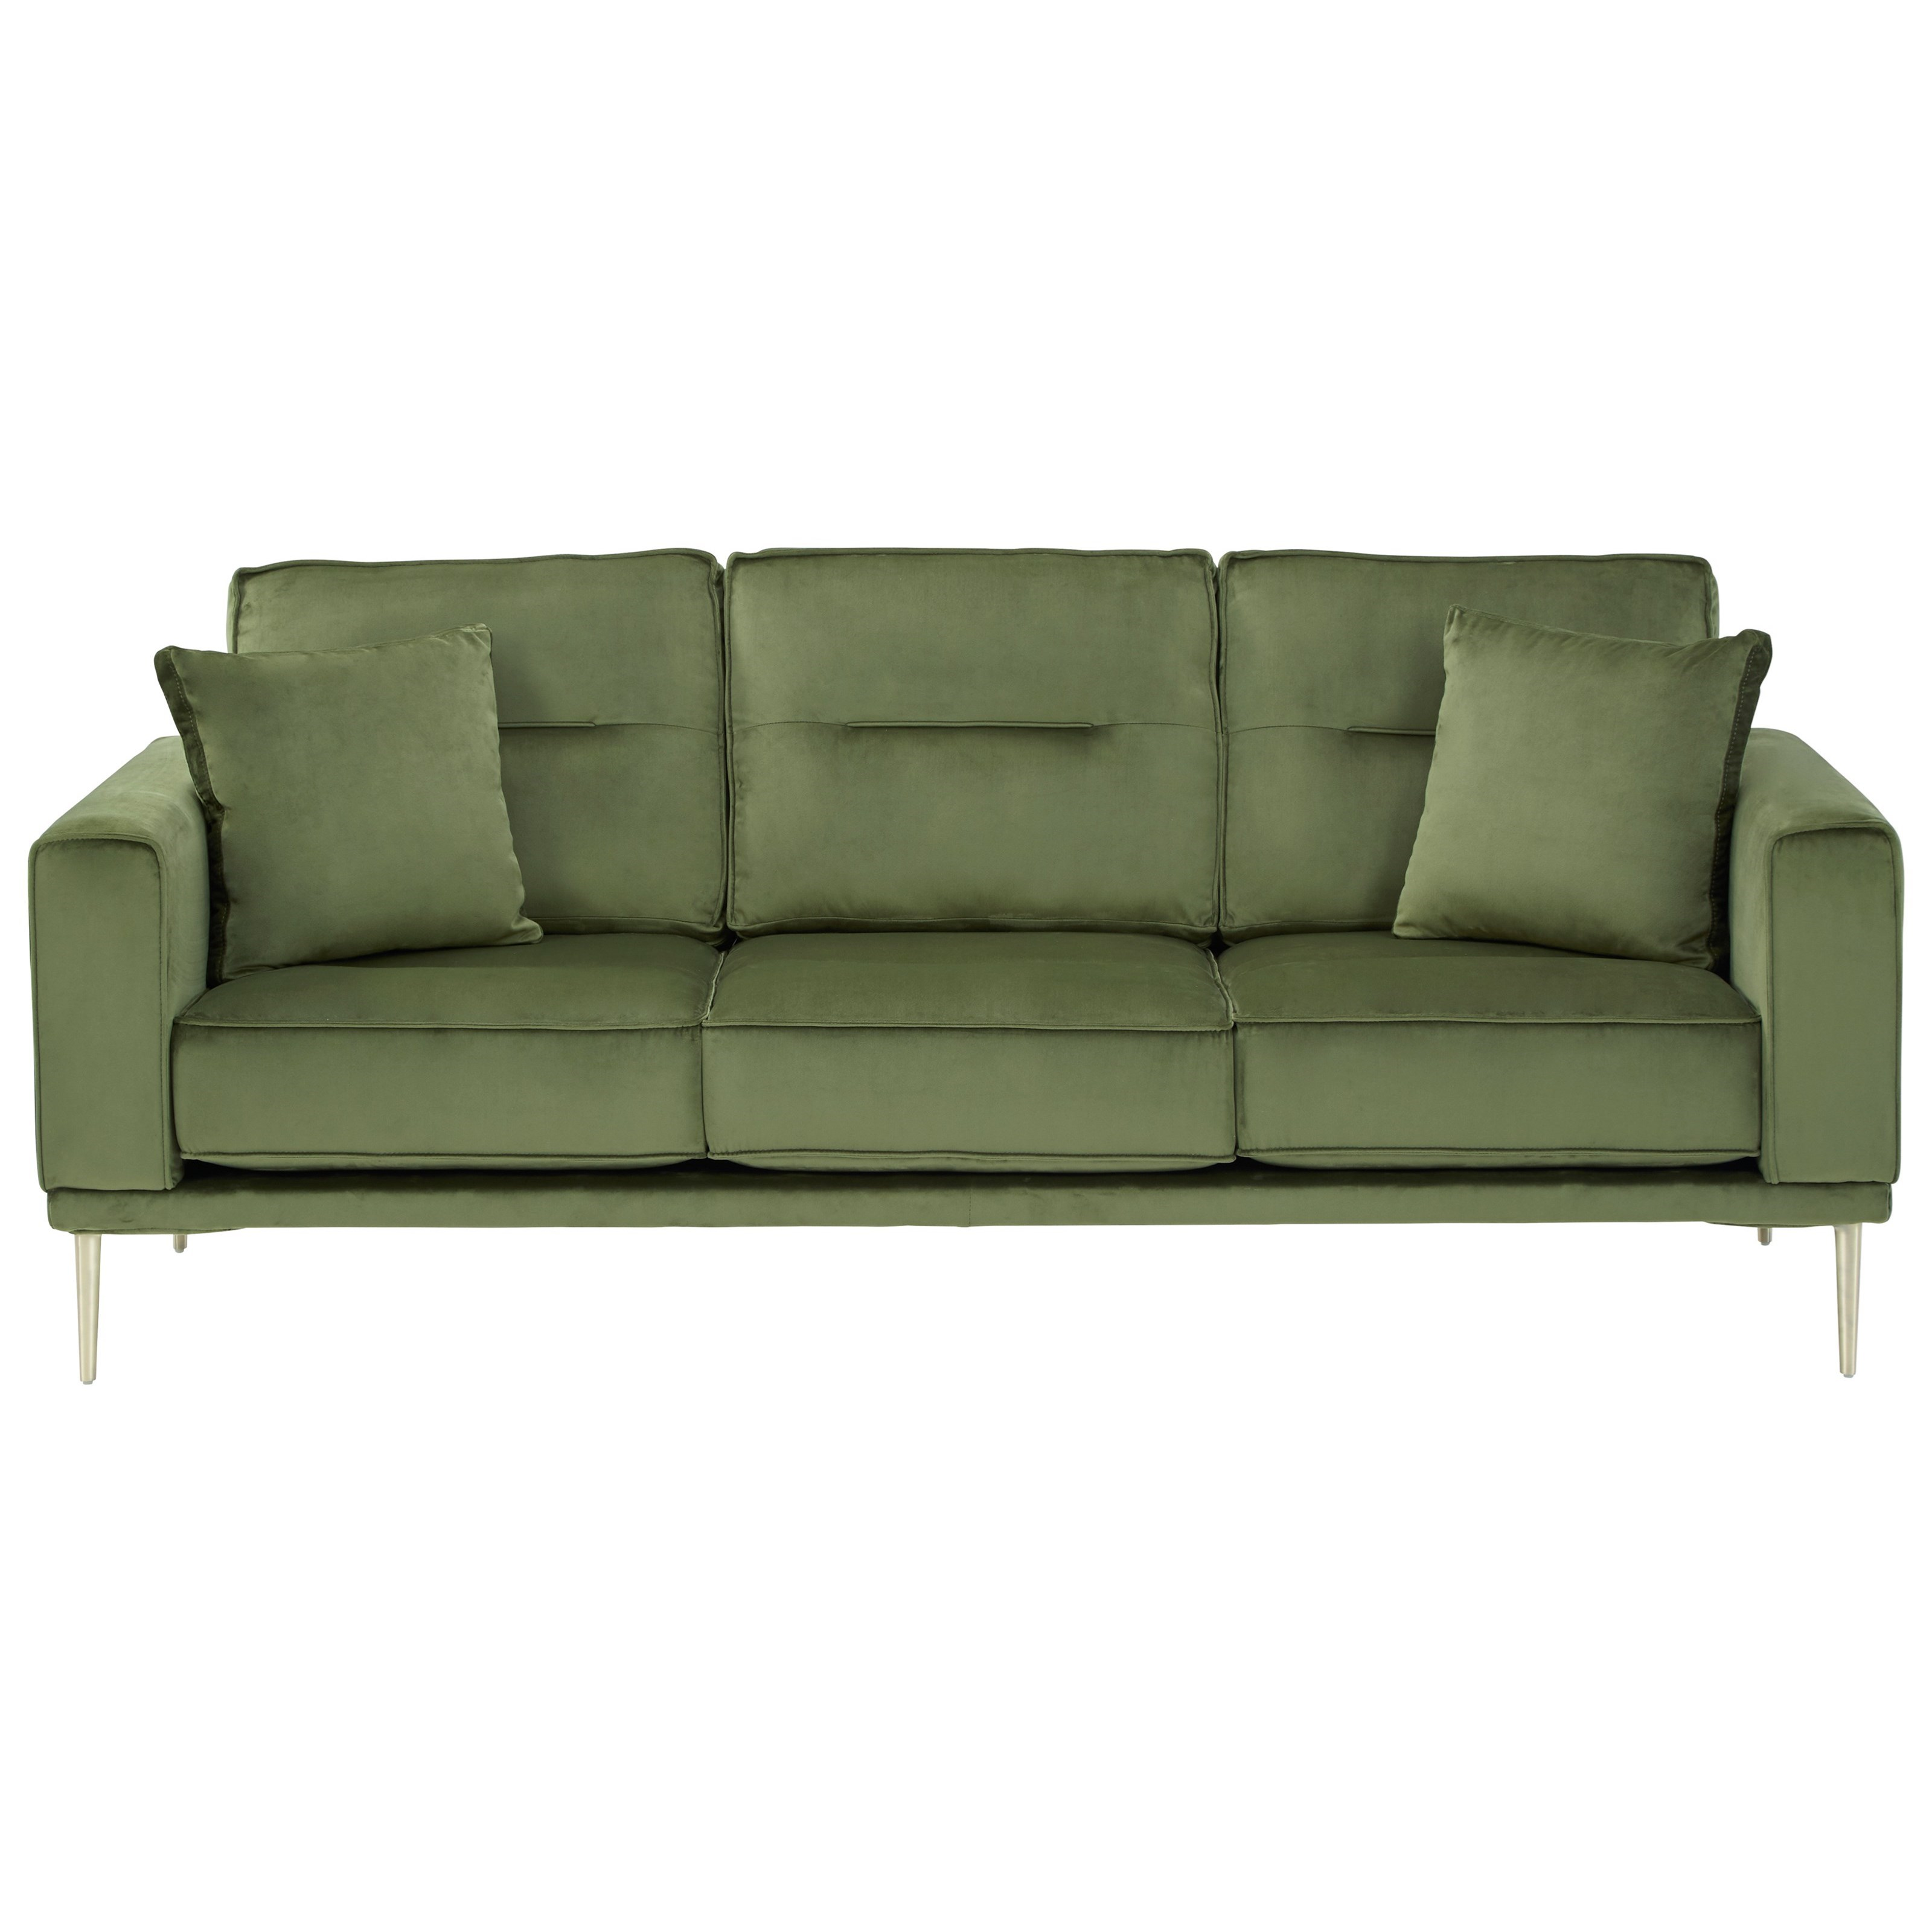 Macleary Sofa by Signature Design by Ashley at Sparks HomeStore